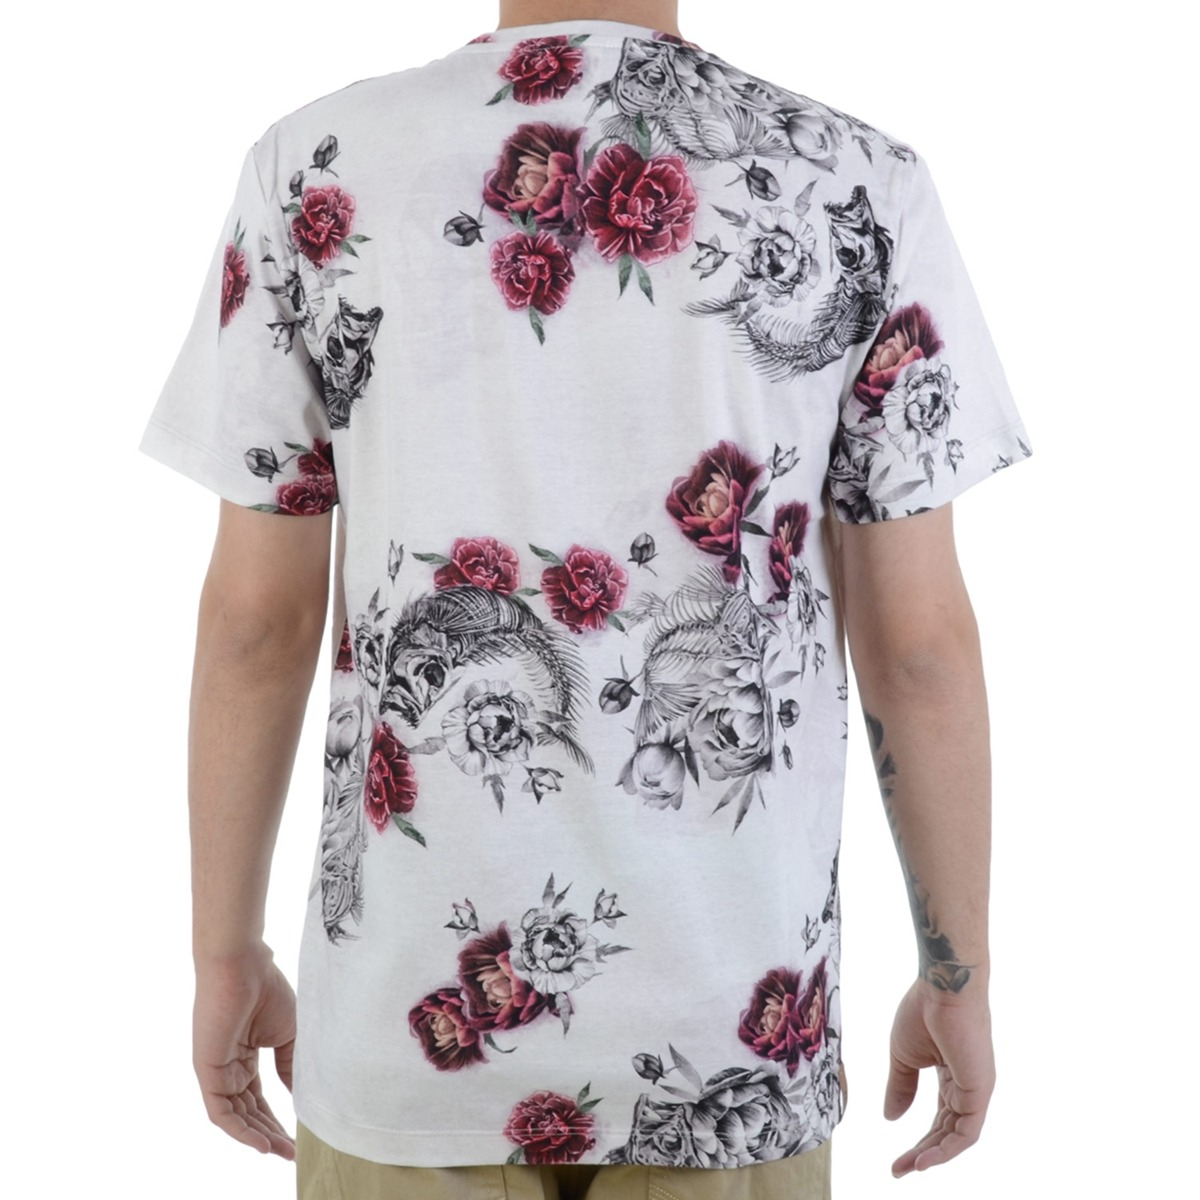 b28cd840f10a3 camiseta mcd especial flower fish. Carregando zoom.